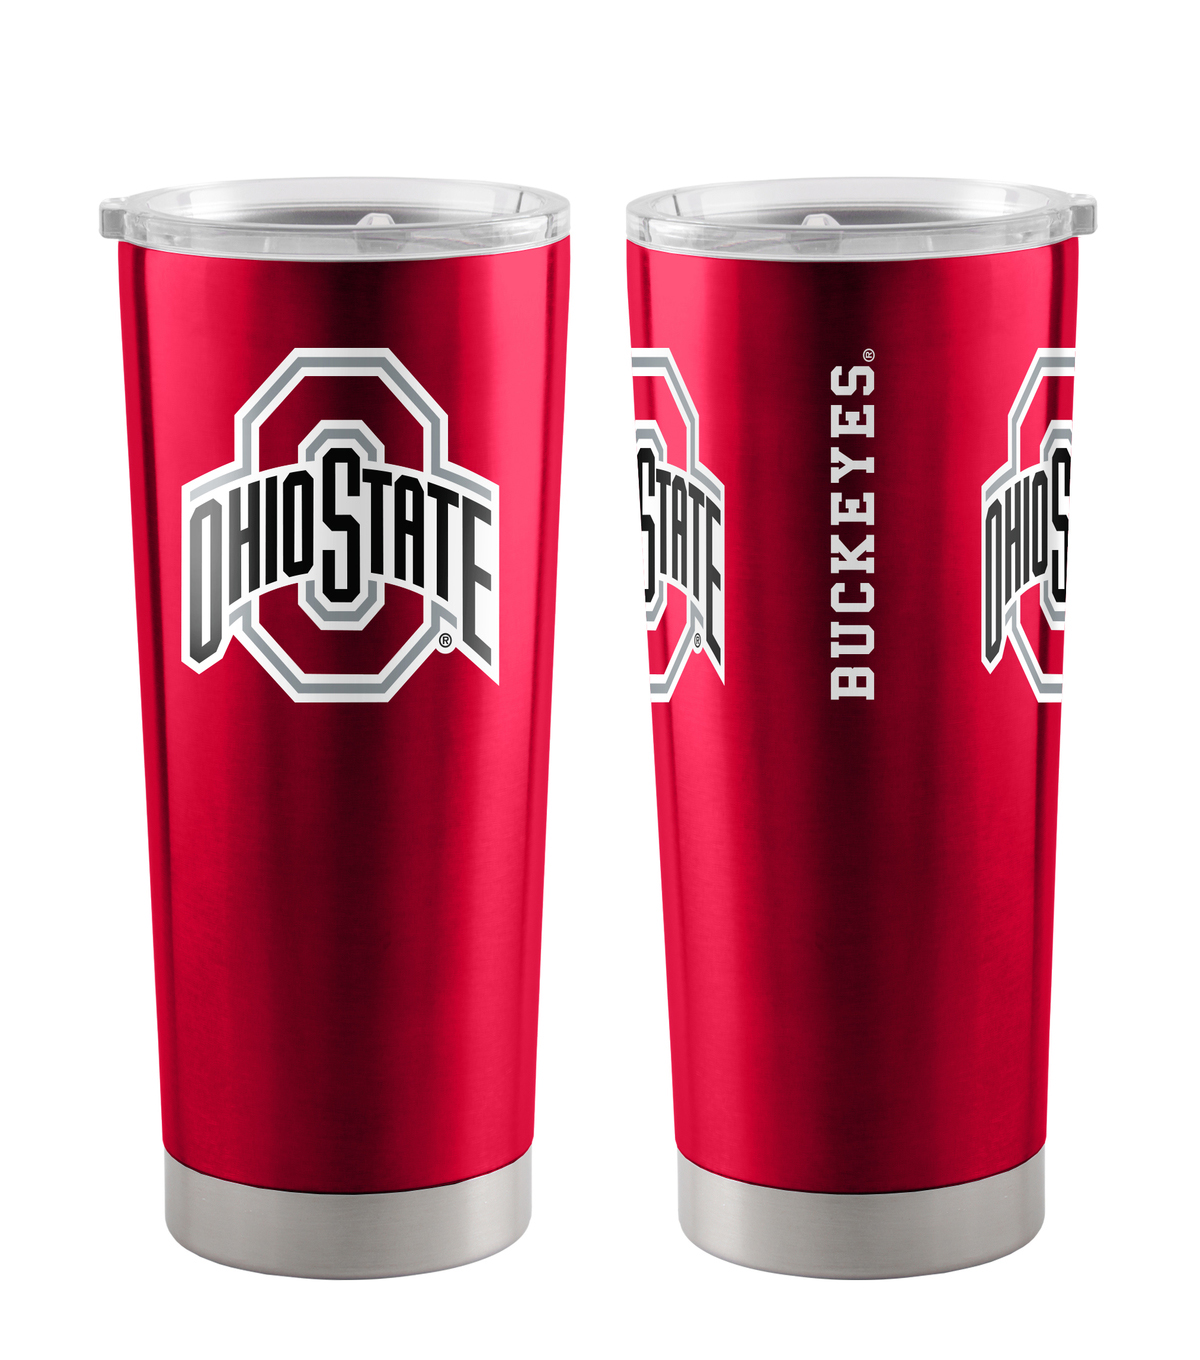 Ohio State University Buckeyes 20 oz Insulated Stainless Steel Tumbler